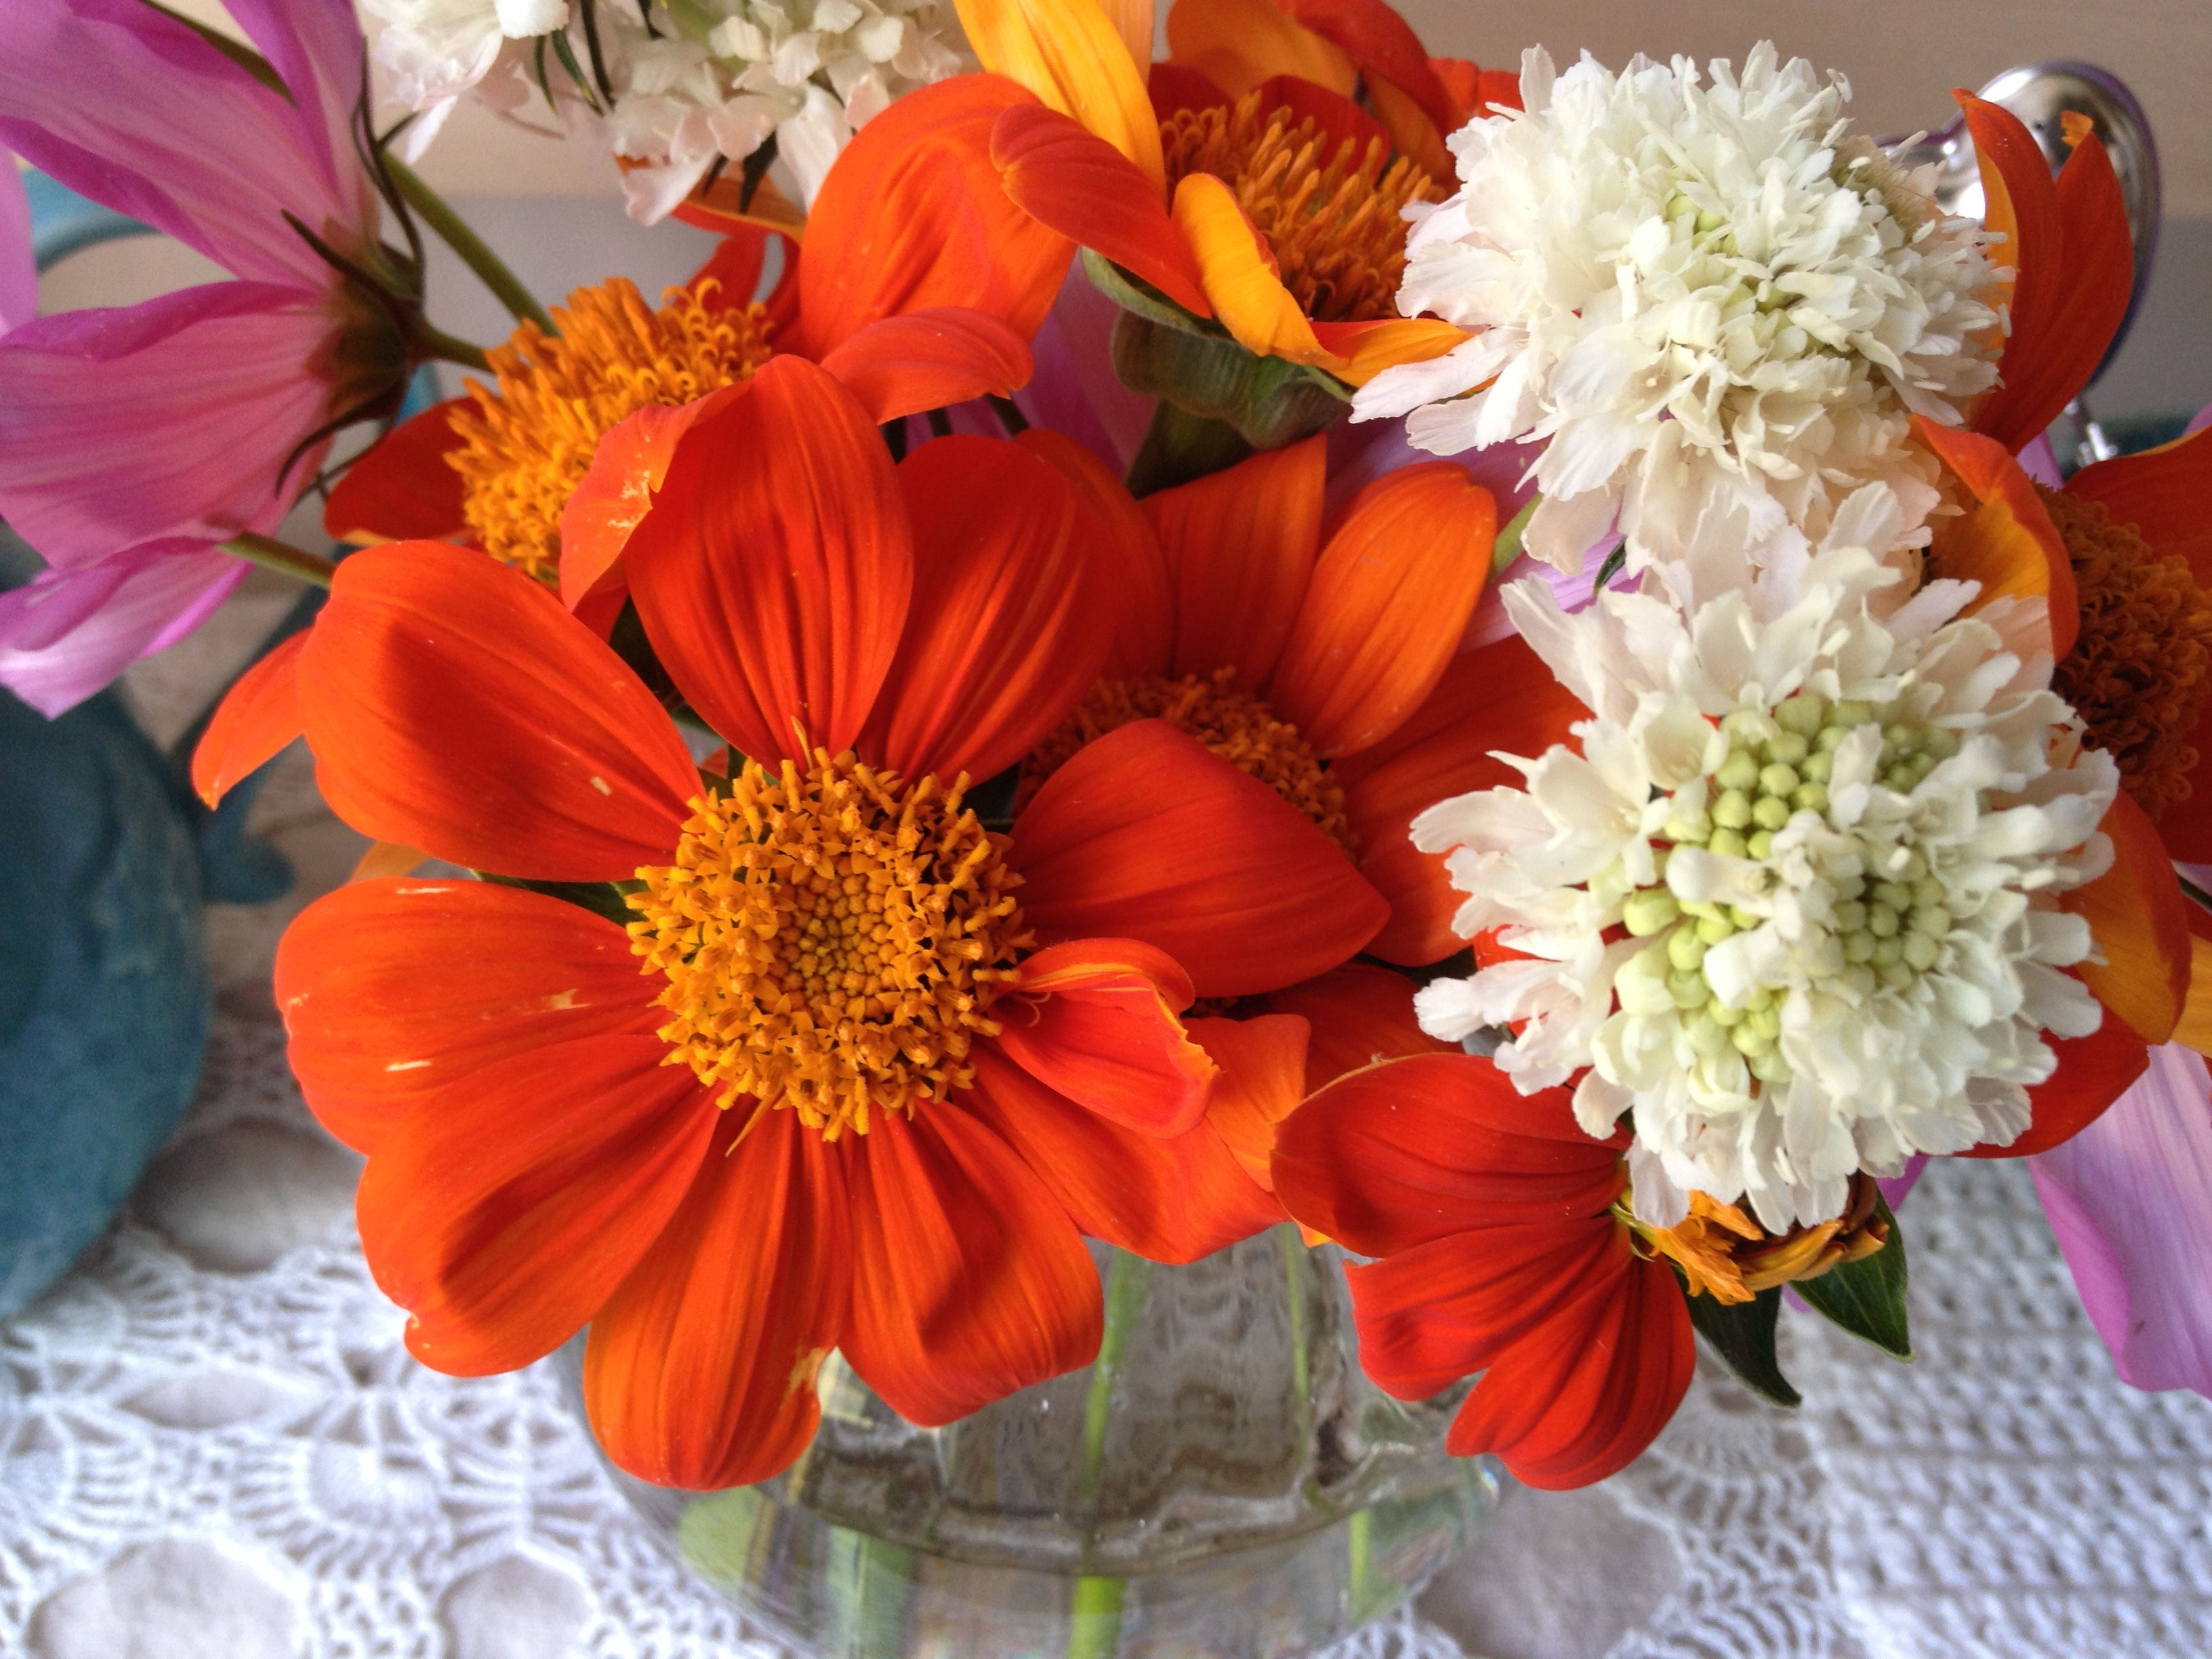 From My Garden A Small Bouquet Of Orang Mexican Sunflowers White